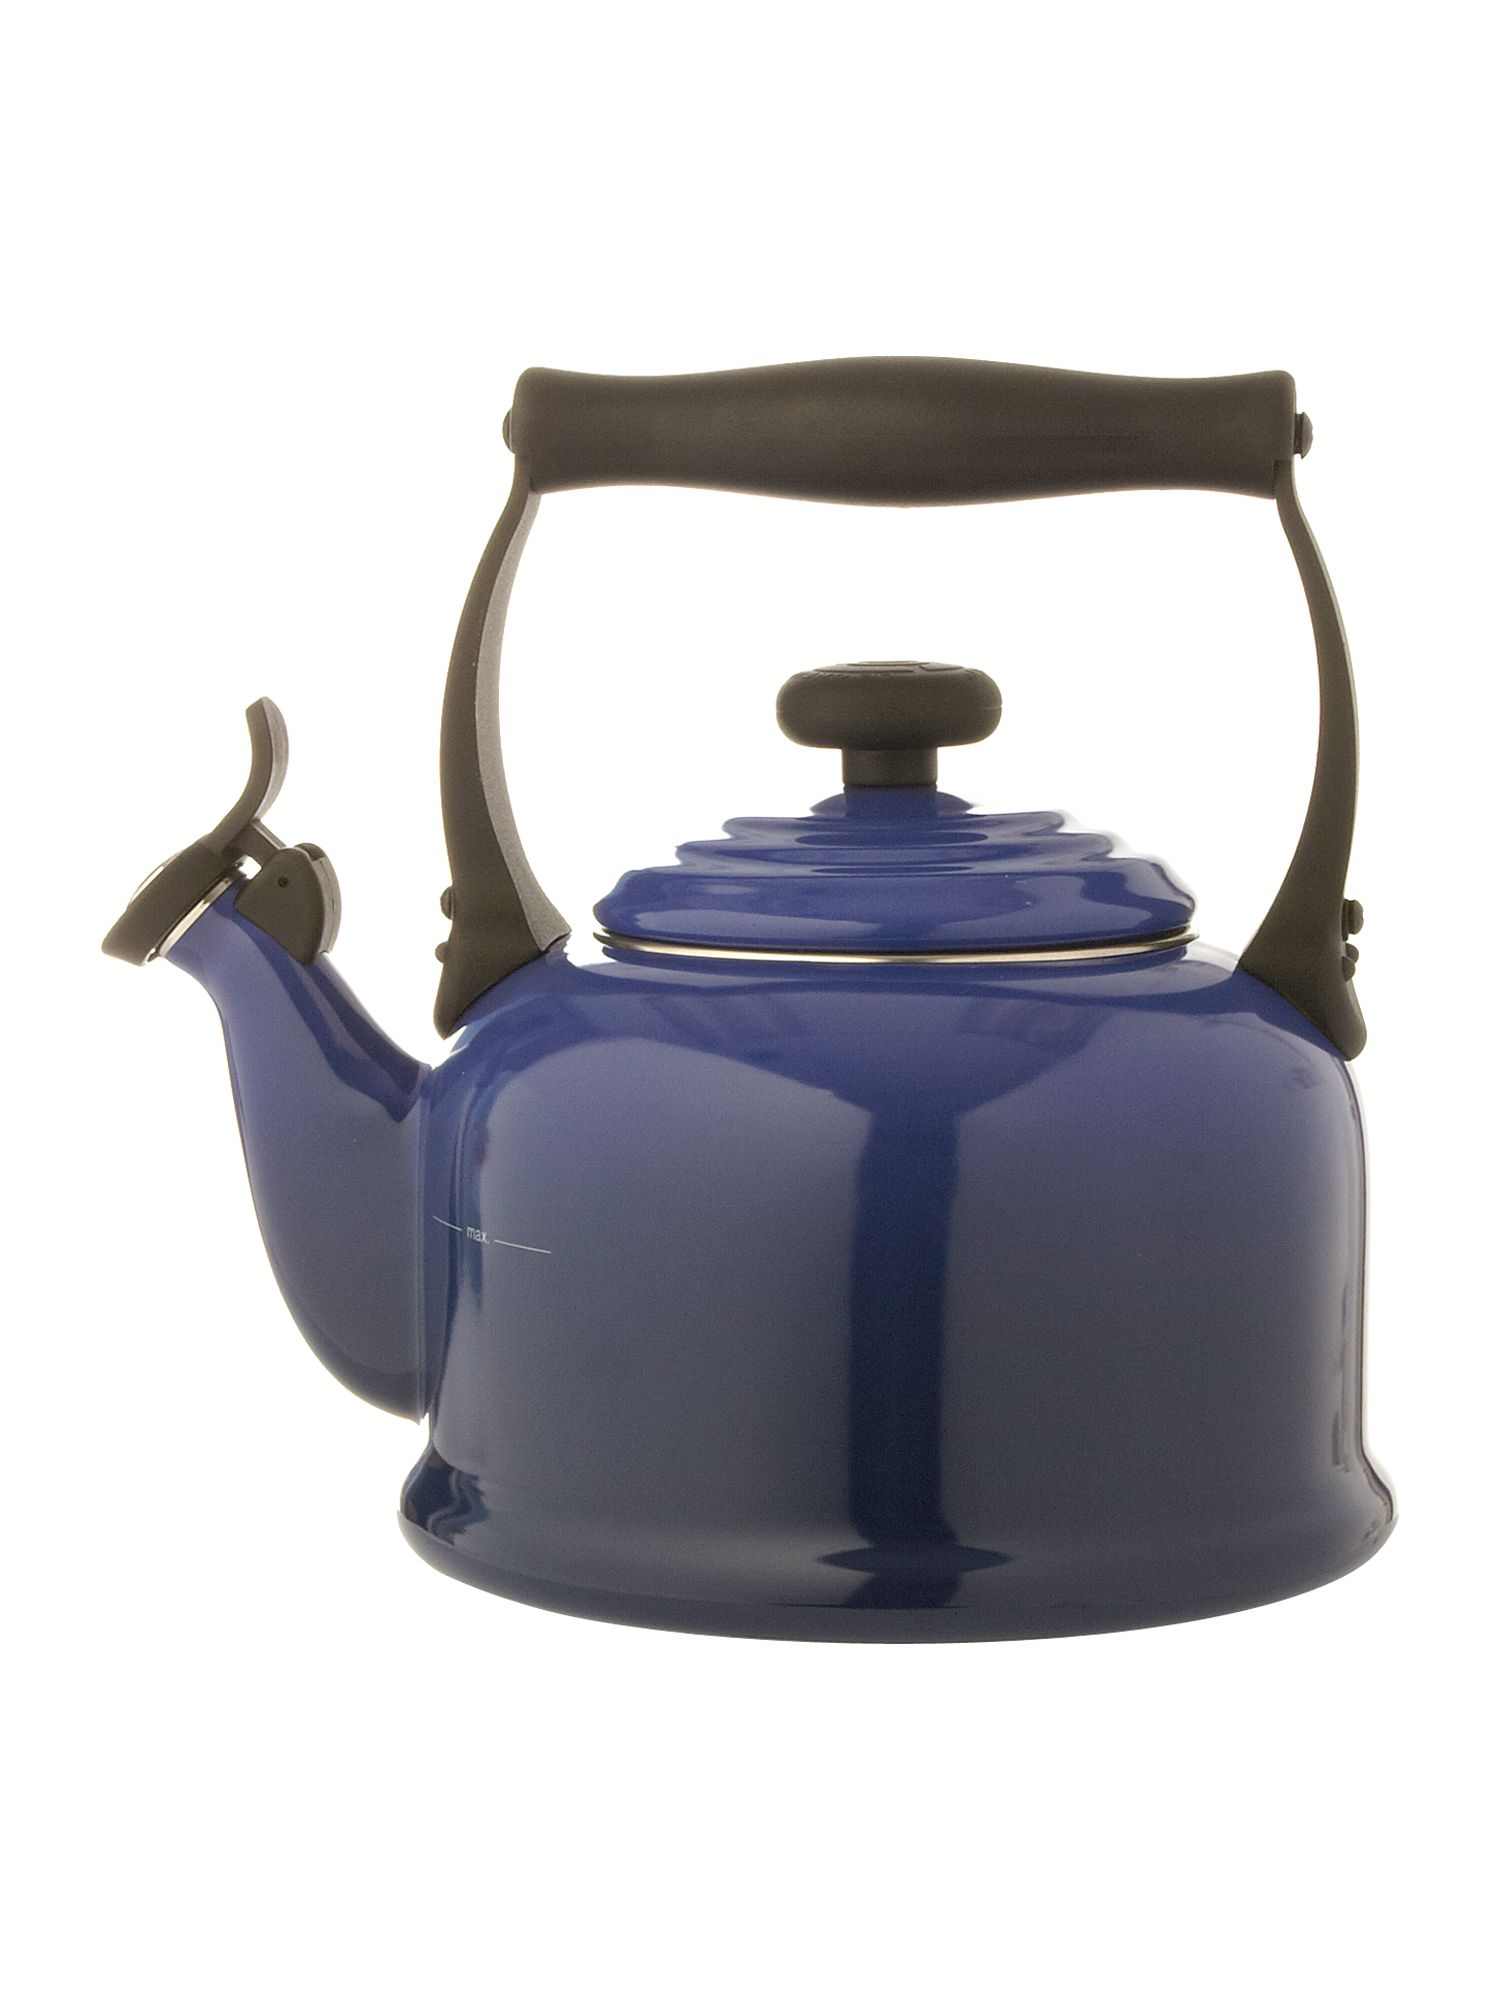 Graded blue traditional stove whistle kettle